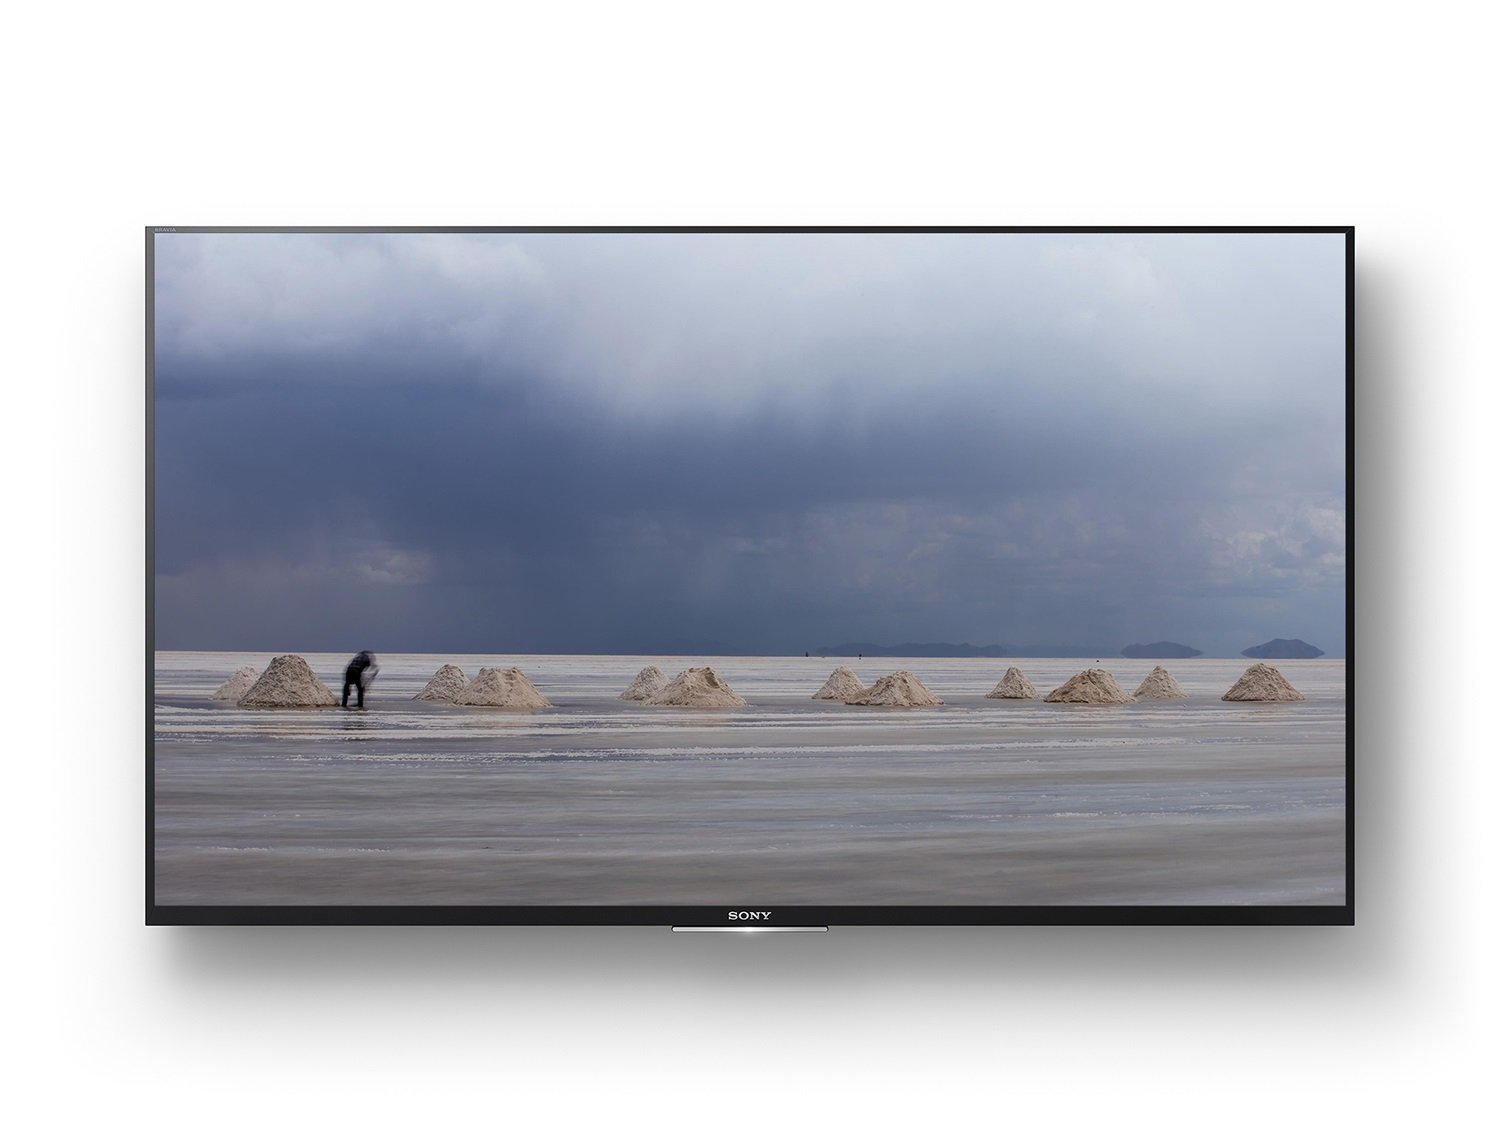 Sony Bravia KDL-55W800D 139cm (55 Inches) Full HD 3D Android LED TV